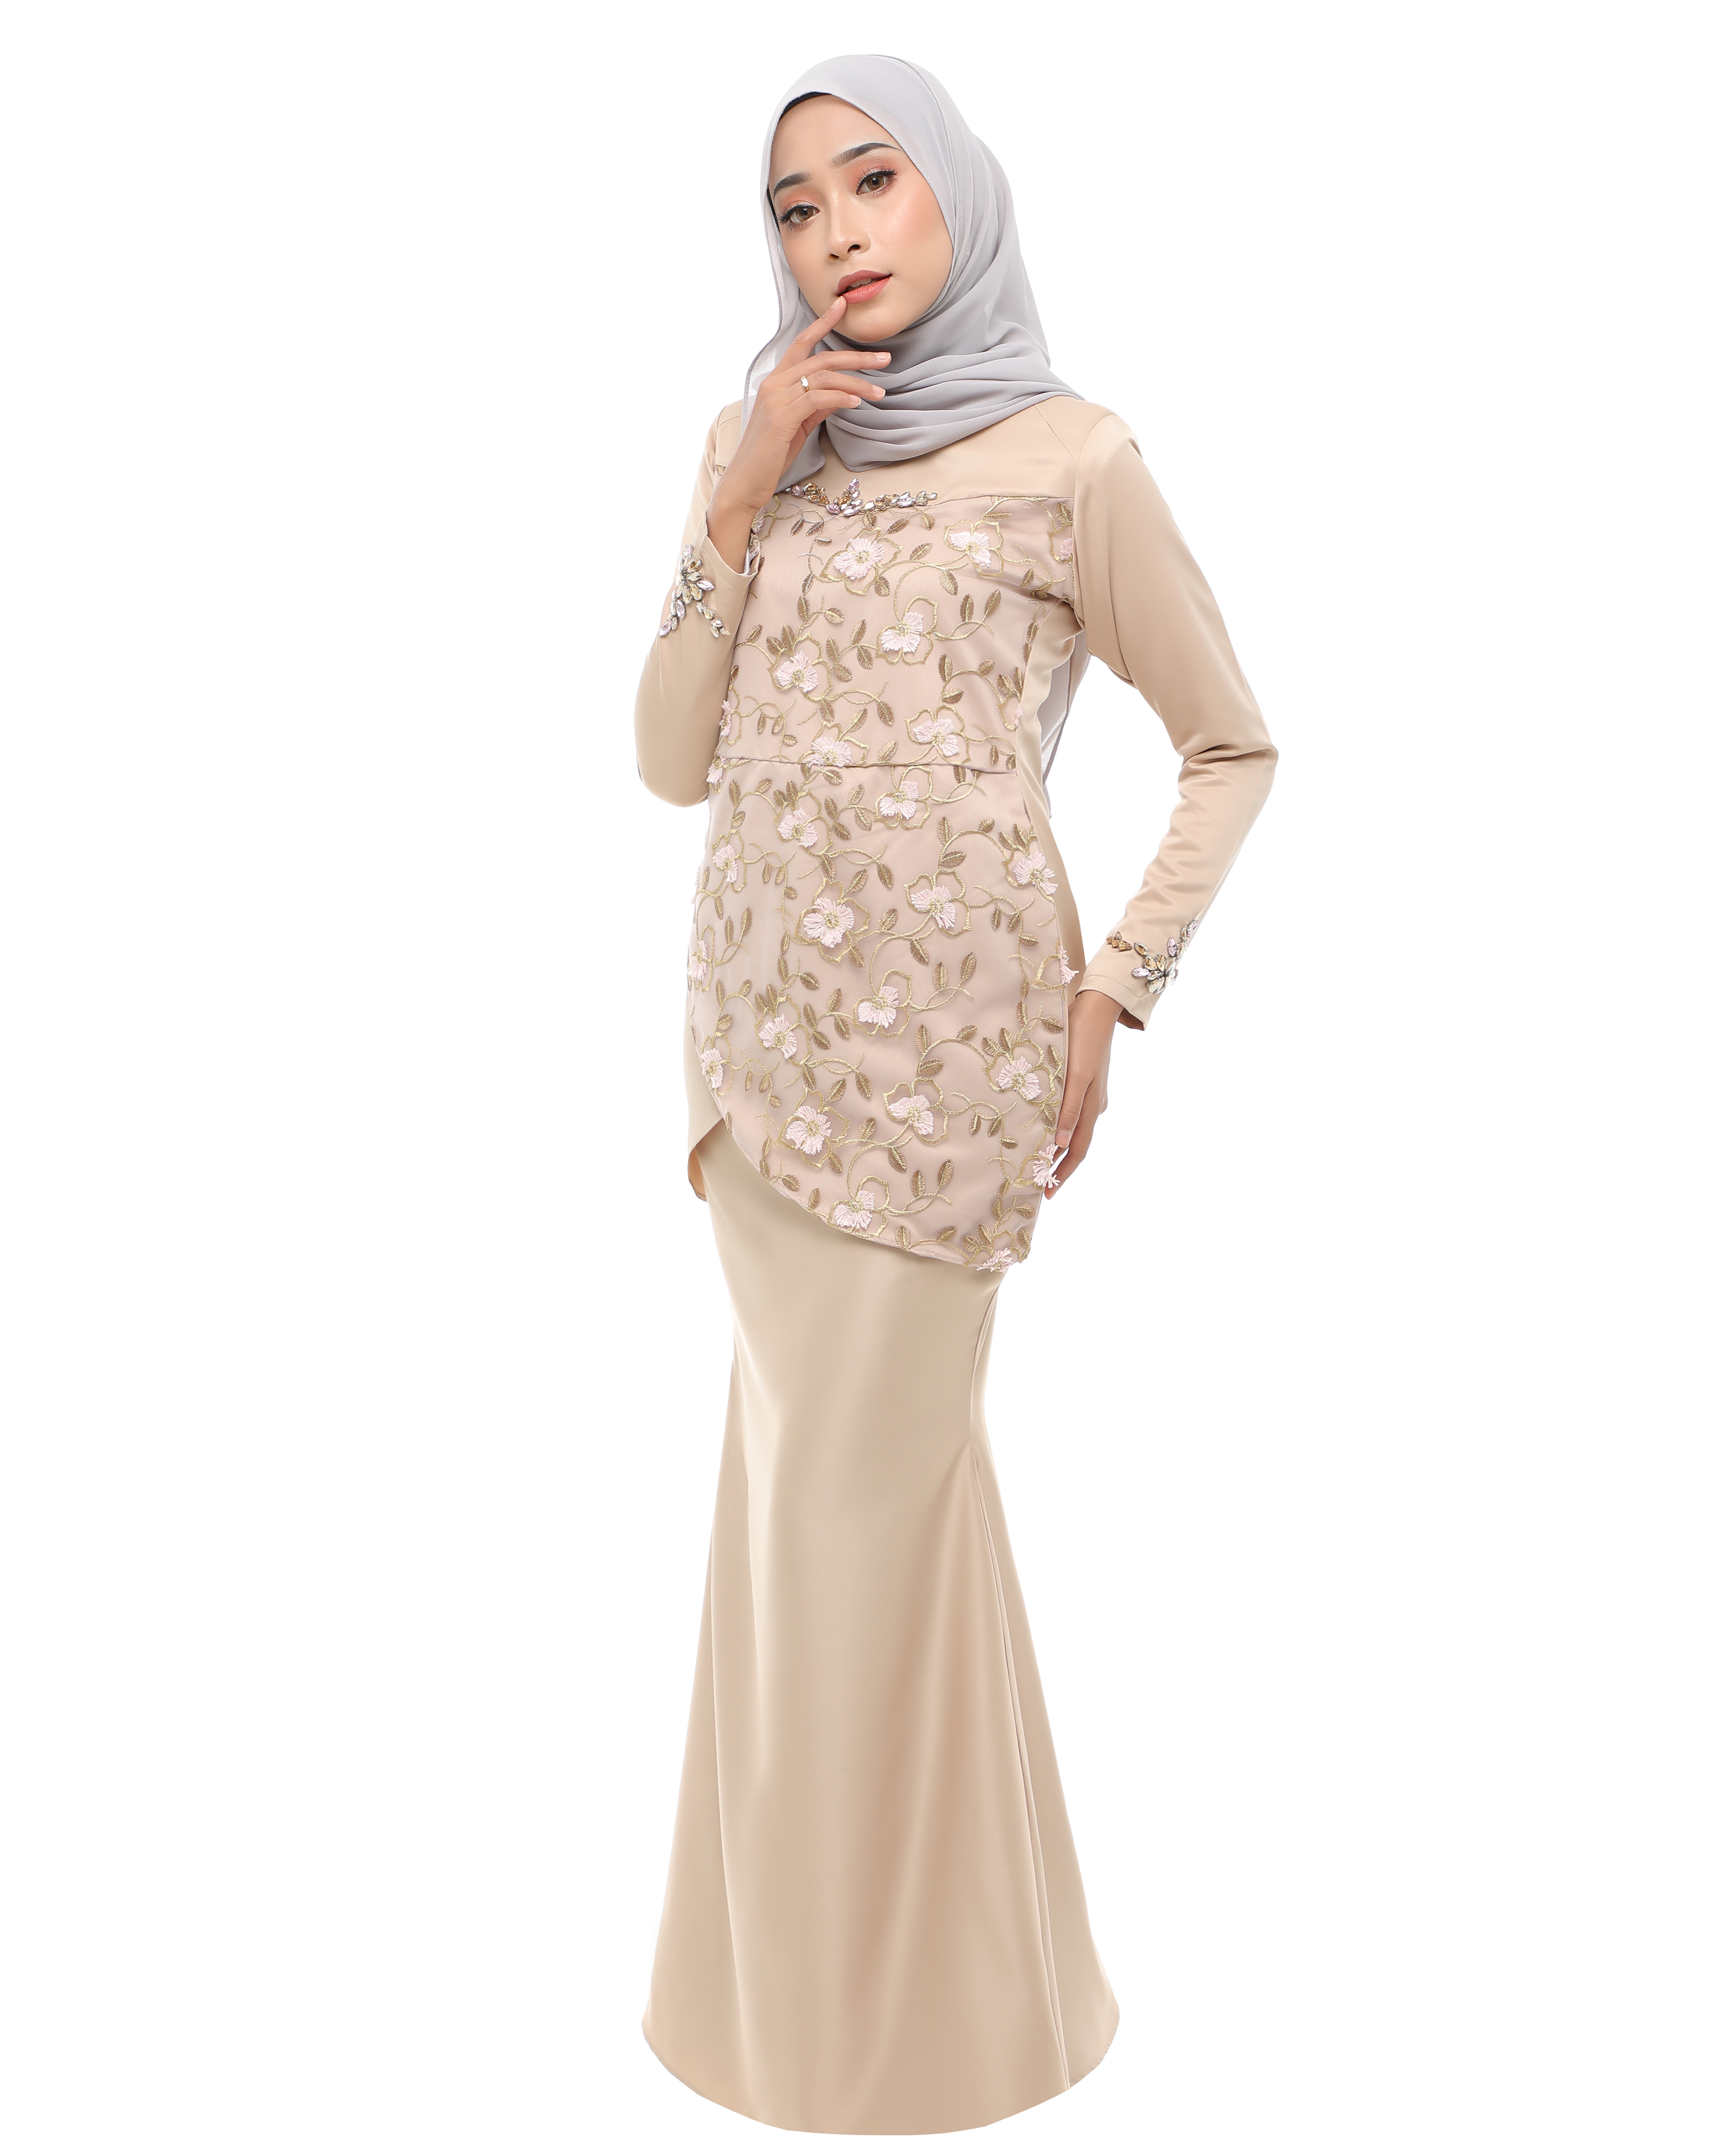 Rosalyn - Gold (Pink Flower Lace)